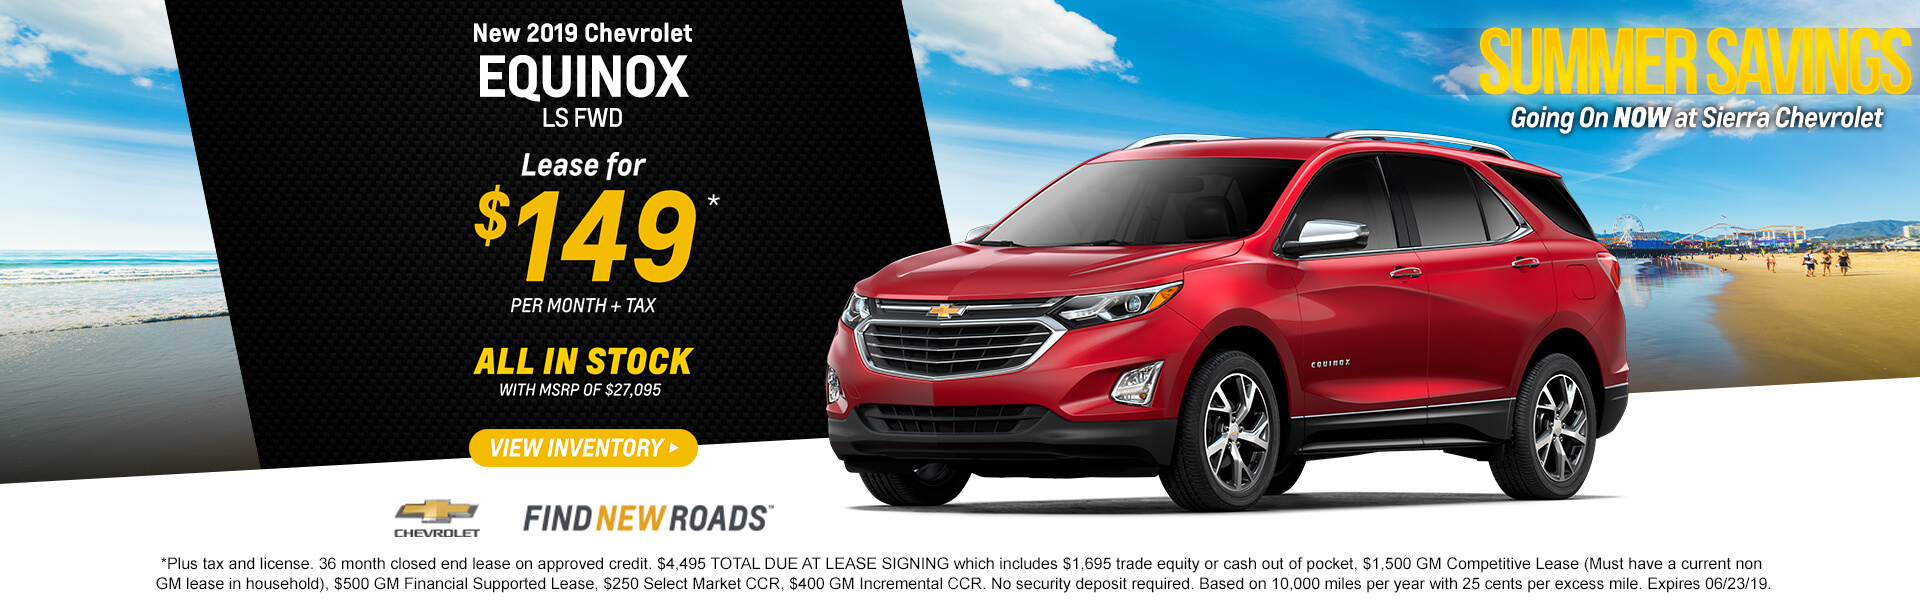 2019 Chevrolet Equinox LS FWD  Lease for $149*  + tax per month  ALL IN STOCK with MSPR of $27,095   *Plus tax and license. 36 month closed end lease on approved credit. $4,495 TOTAL DUE AT LEASE SIGNING which includes $1,695 trade equity or cash out of pocket, $1,500 GM Competitive Lease (Must have a current non GM lease in household), $500 GM Financial Supported Lease, $250 Select Market CCR, $400 GM Incremental CCR. No security deposit required. Based on 10,000 miles per year with 25 cents per excess mile. Expires 06/23/19.